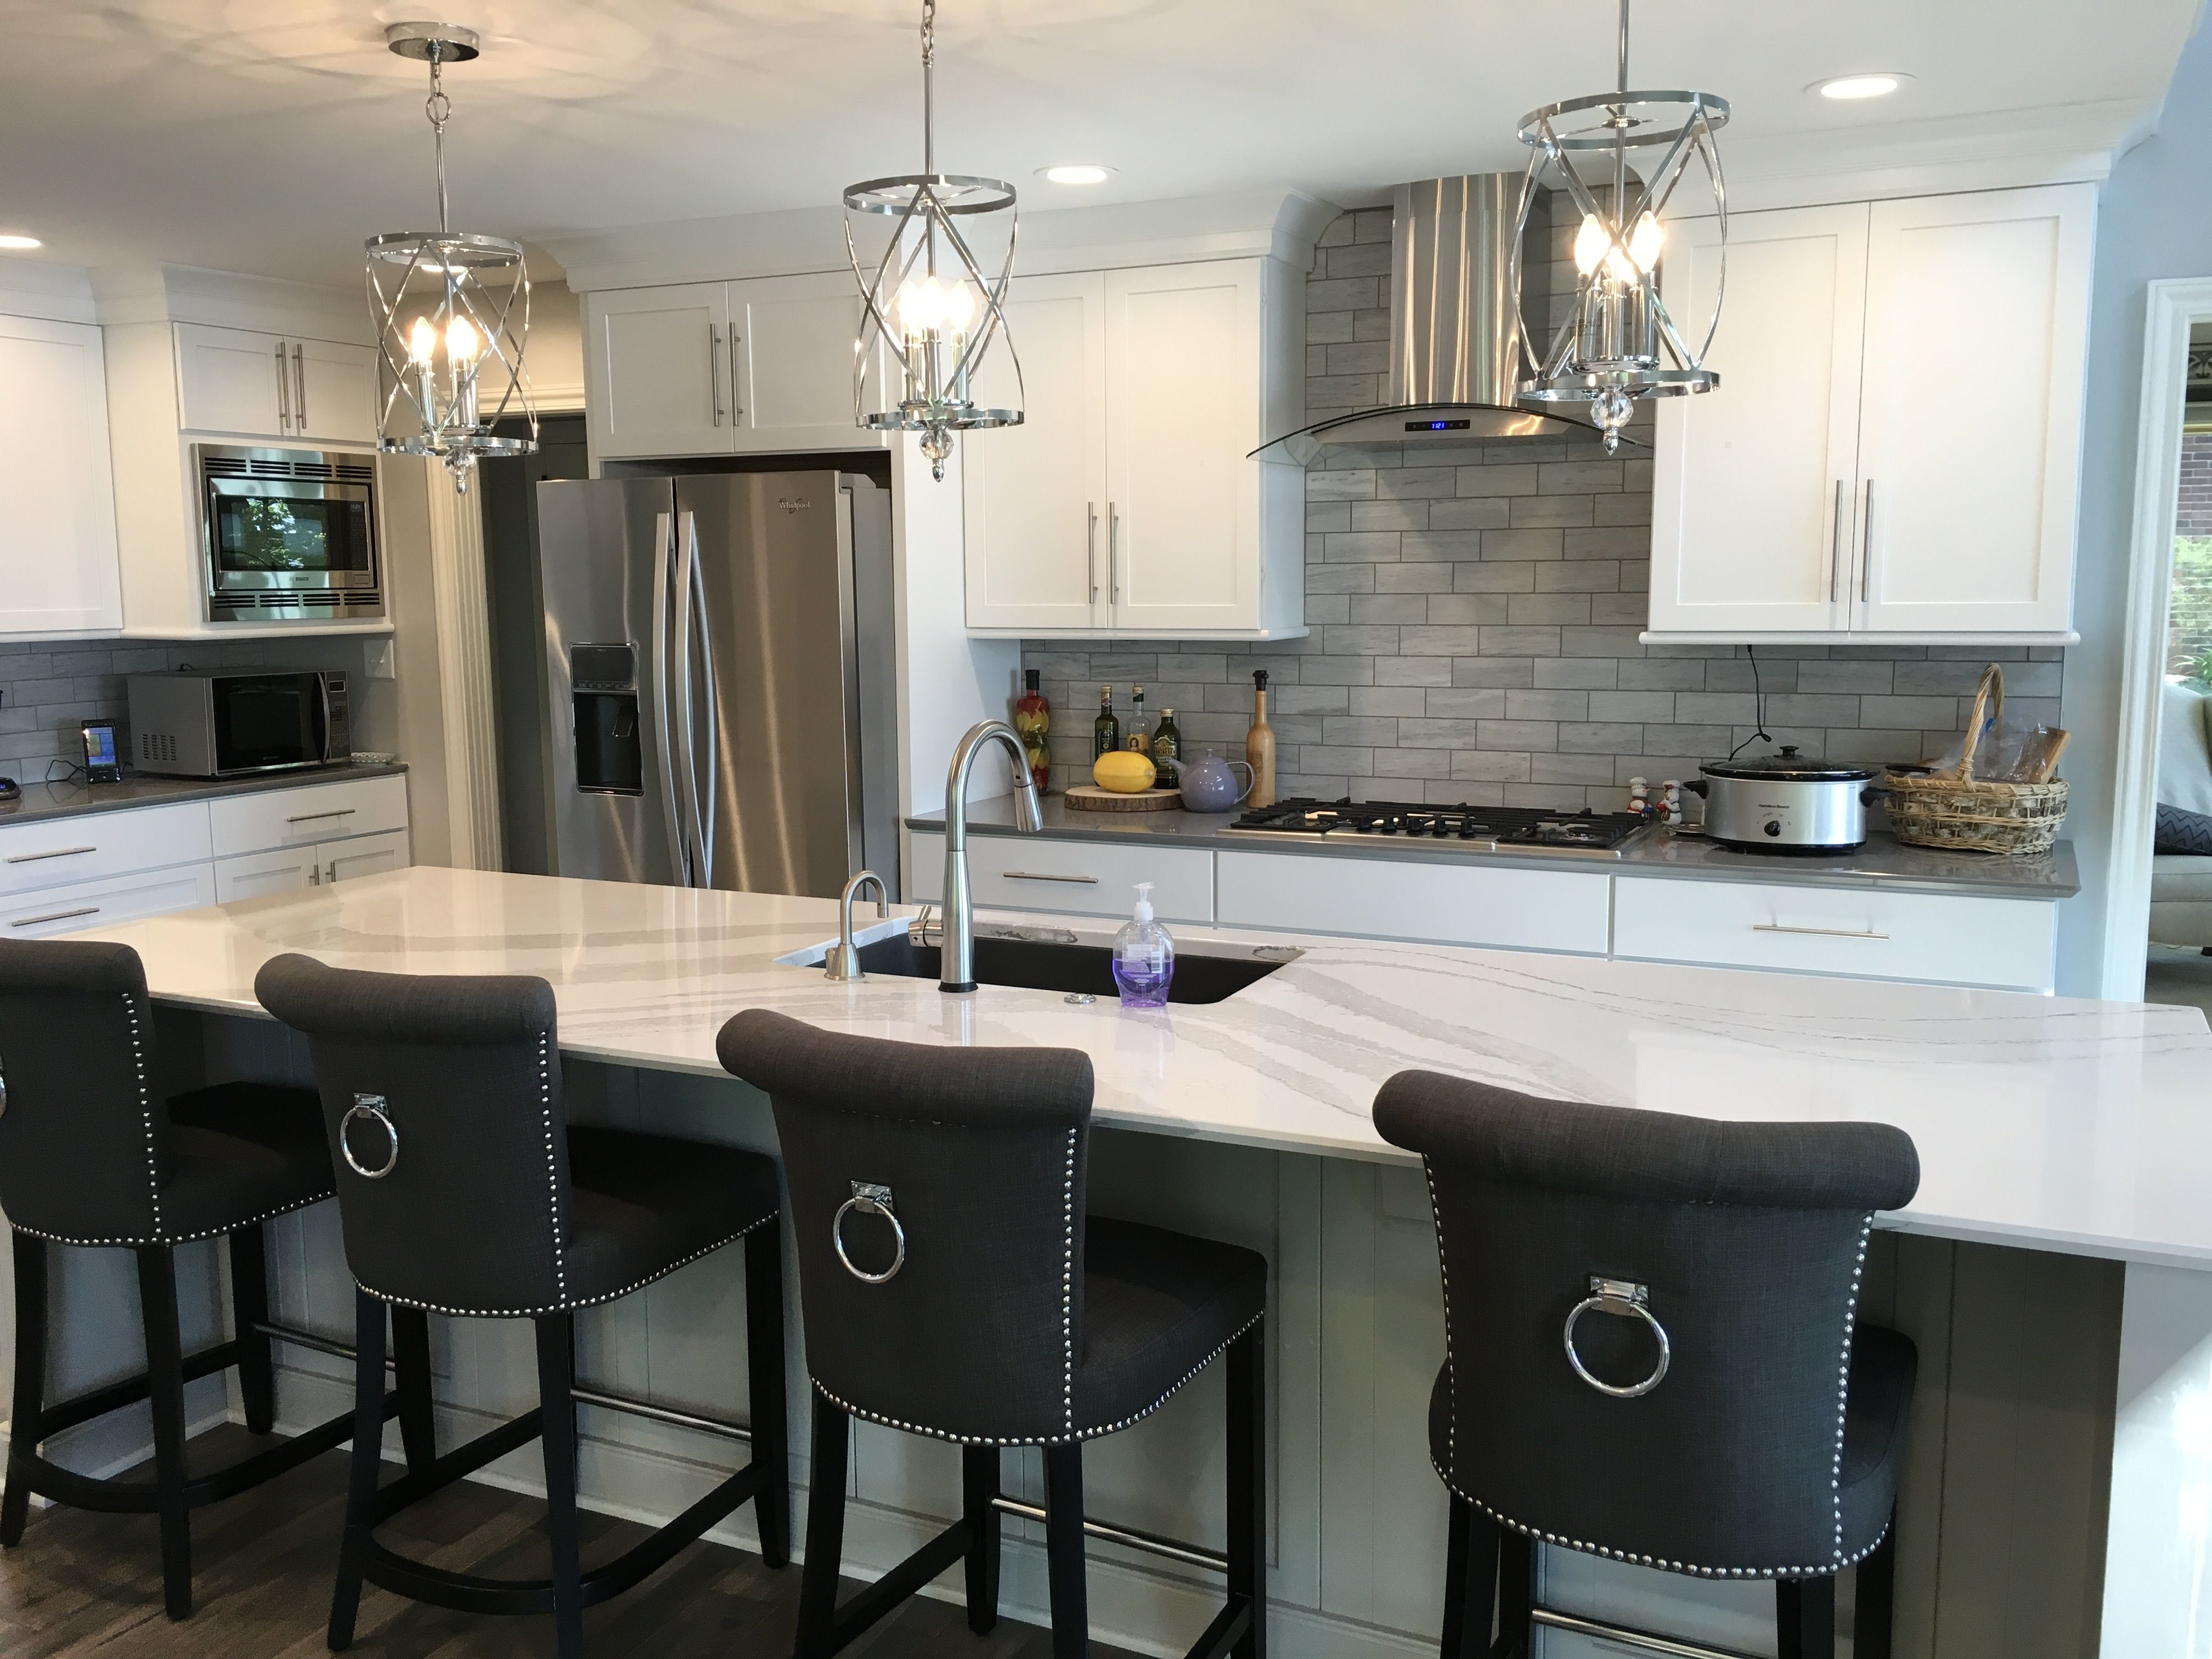 Treat Yourself To A Lifestyle Group Kitchen Remodel For The Holidays The  Lifestyle Group In Indianapolis